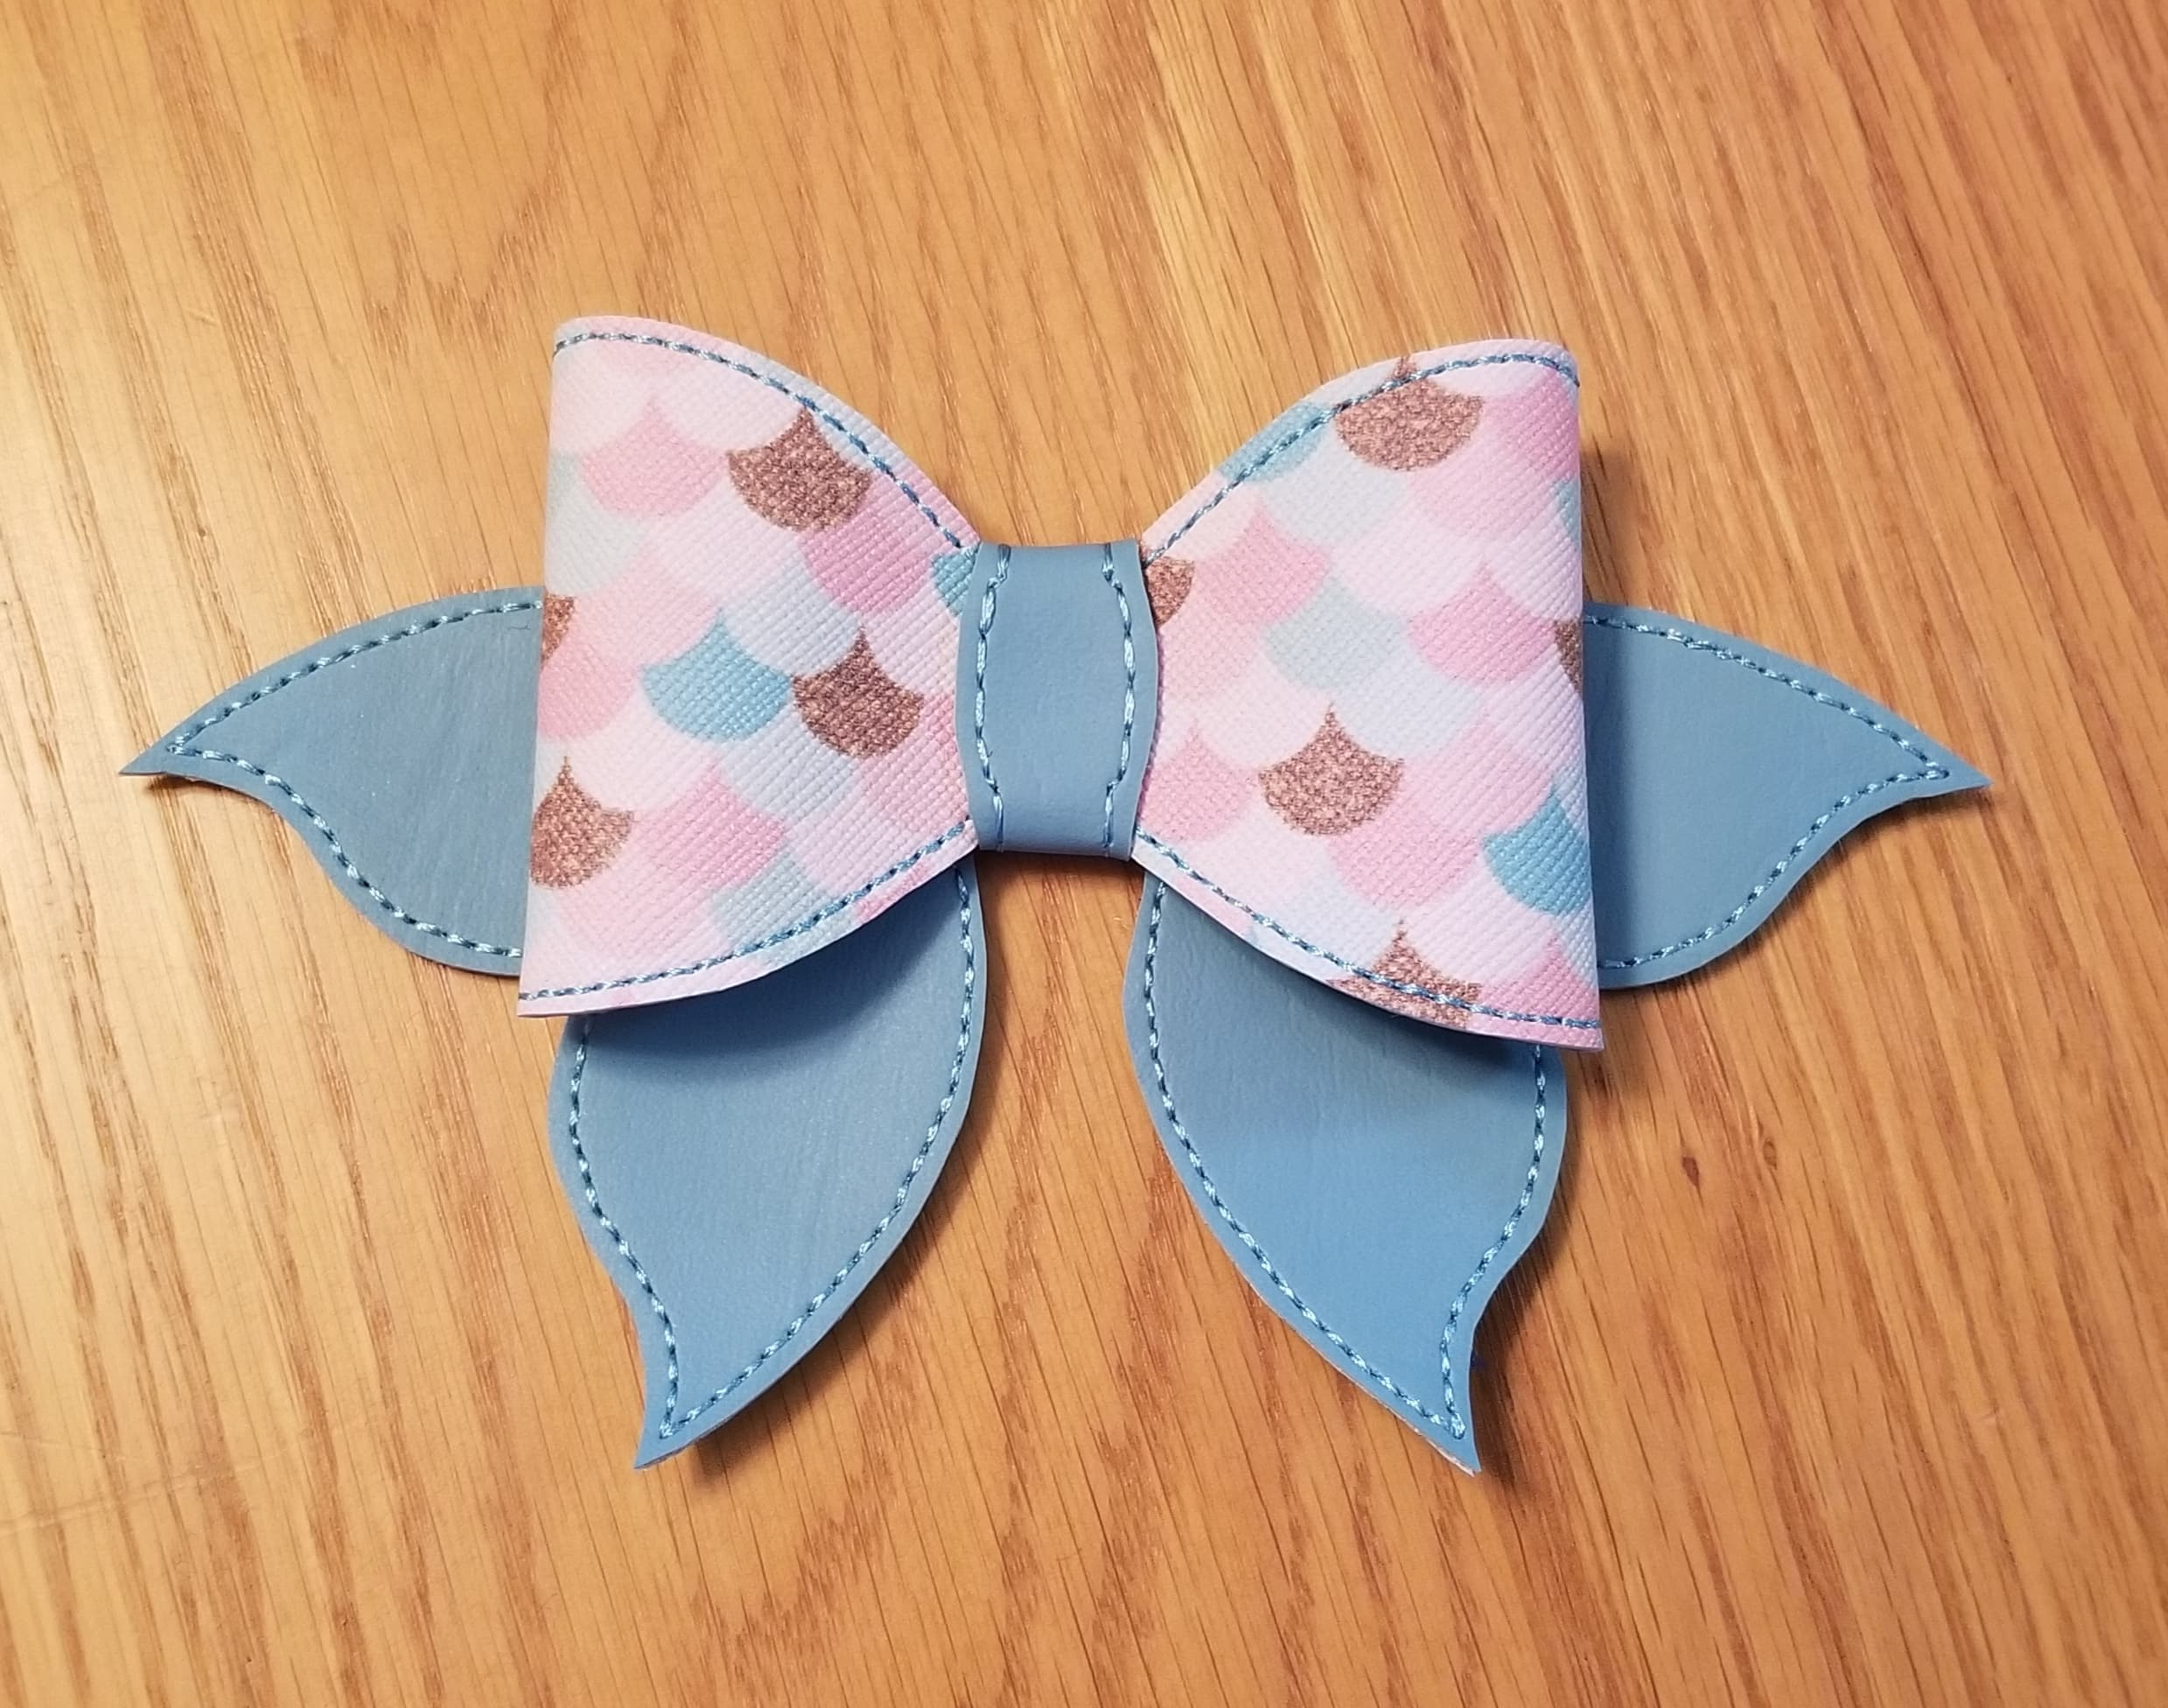 Mermaid Bow with Fin Embroidery Design